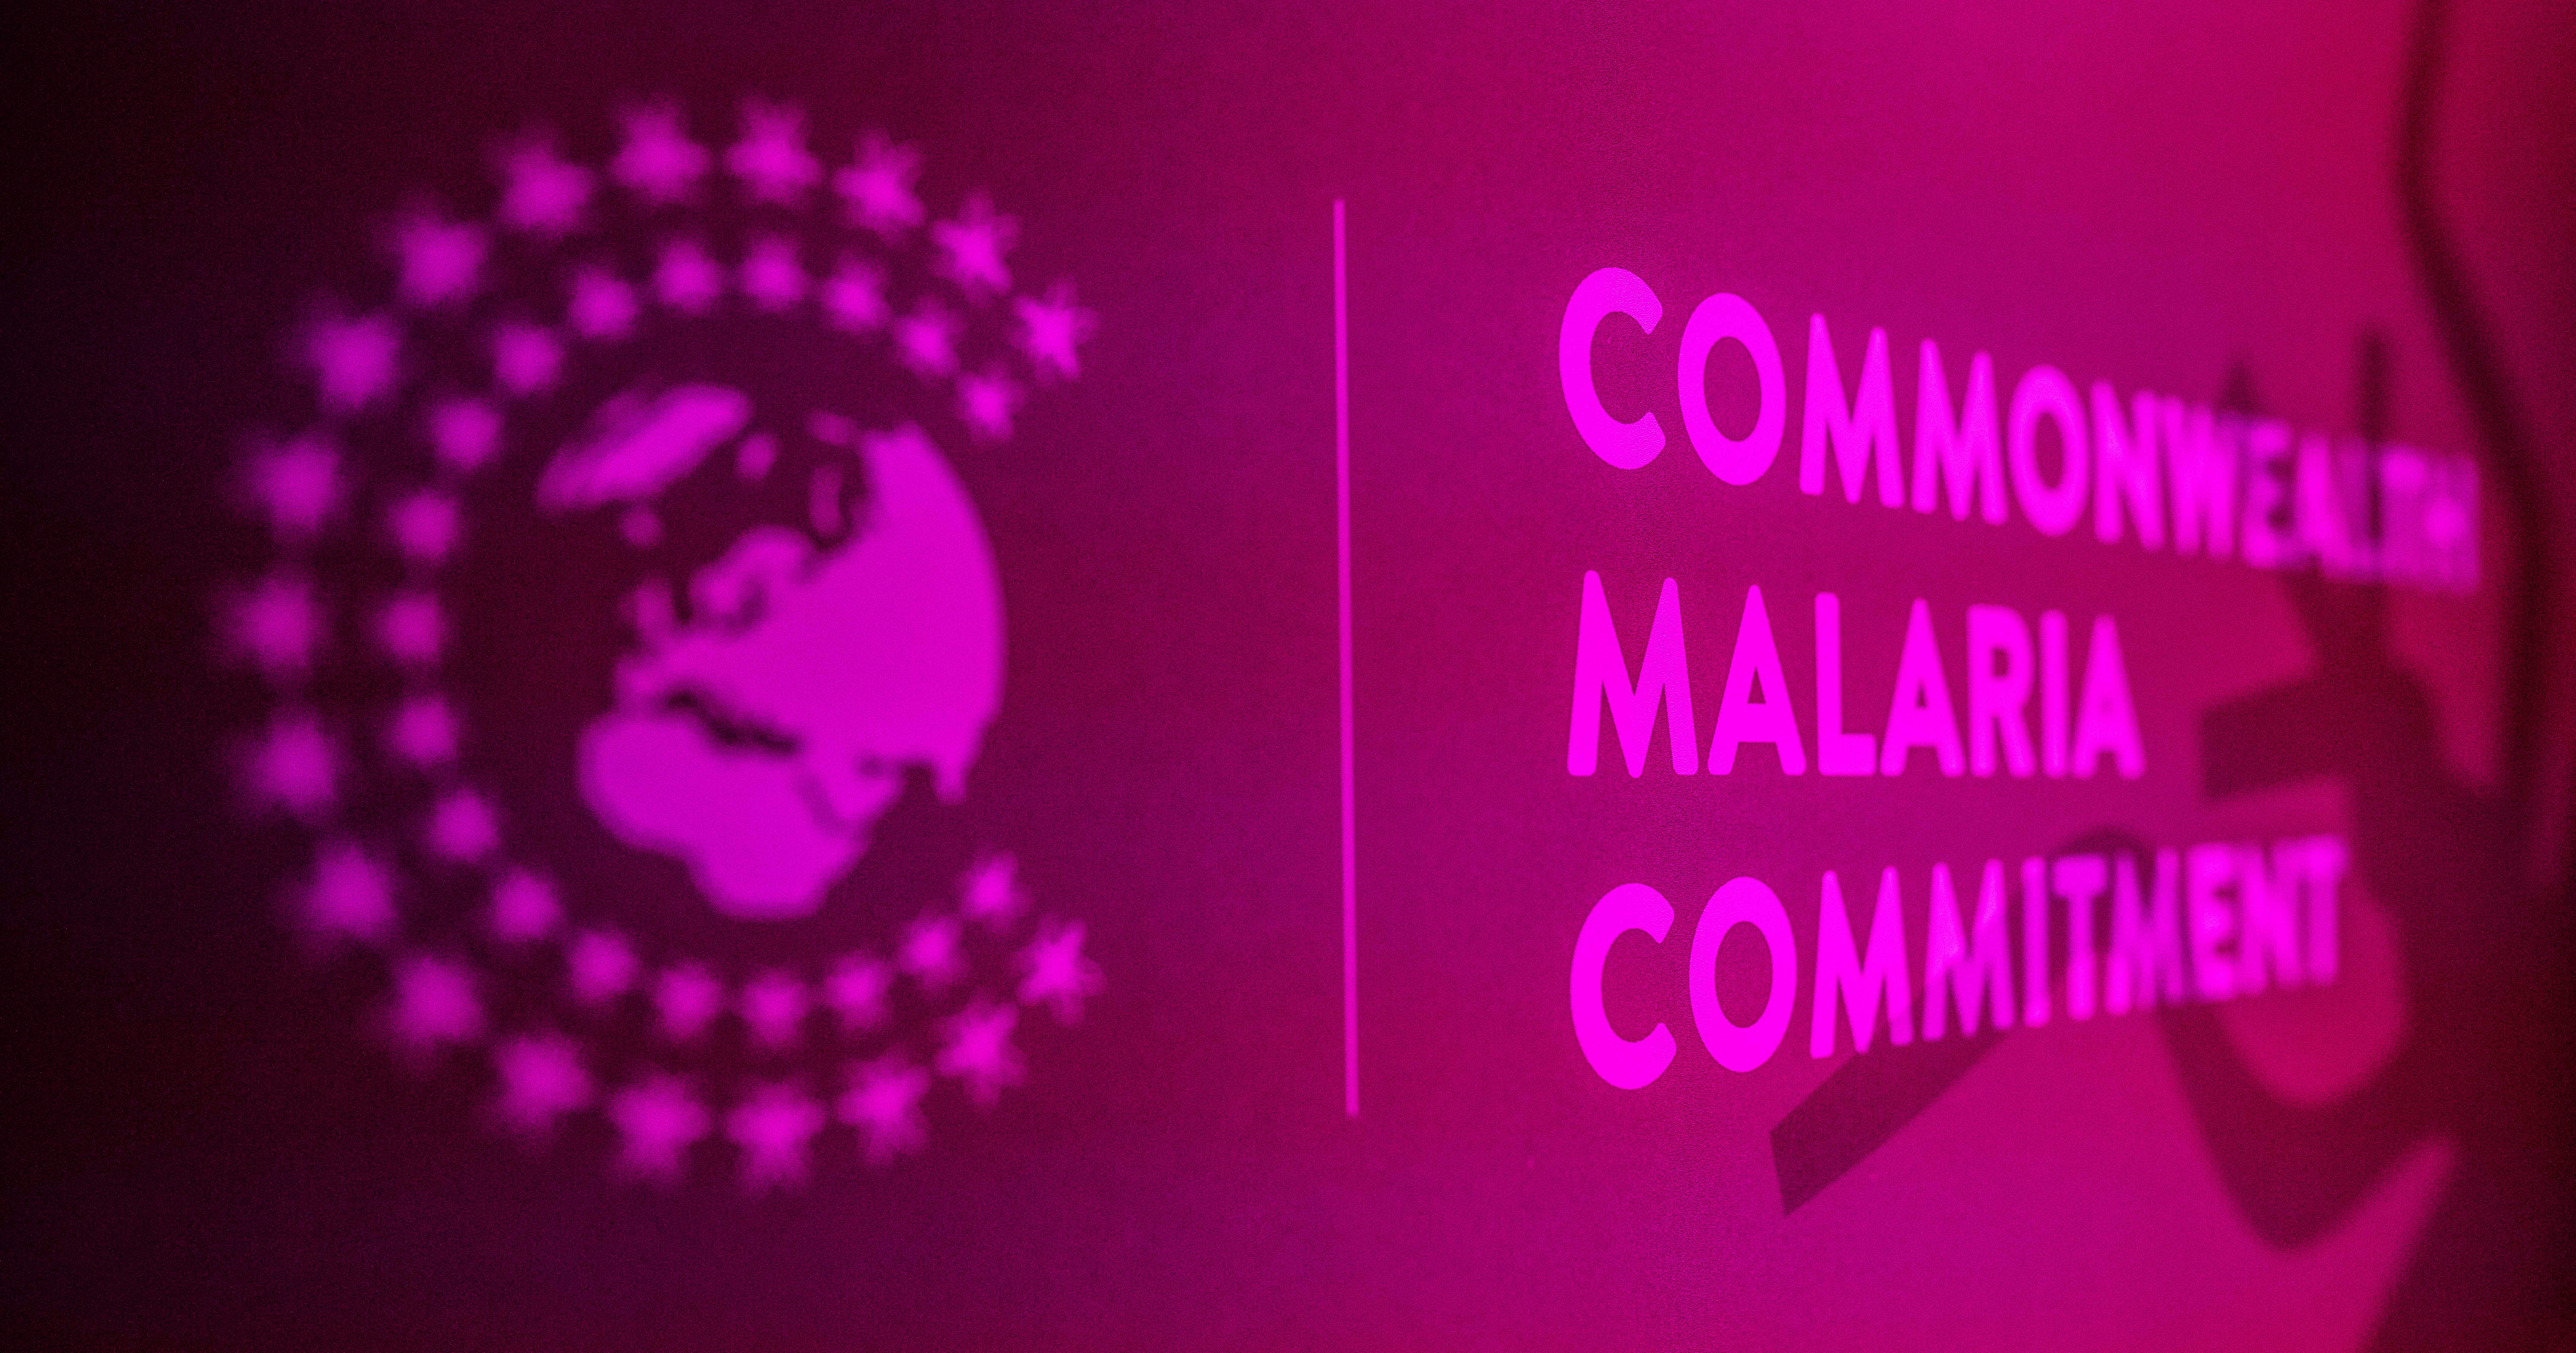 Commonwealth malaria commitment banner